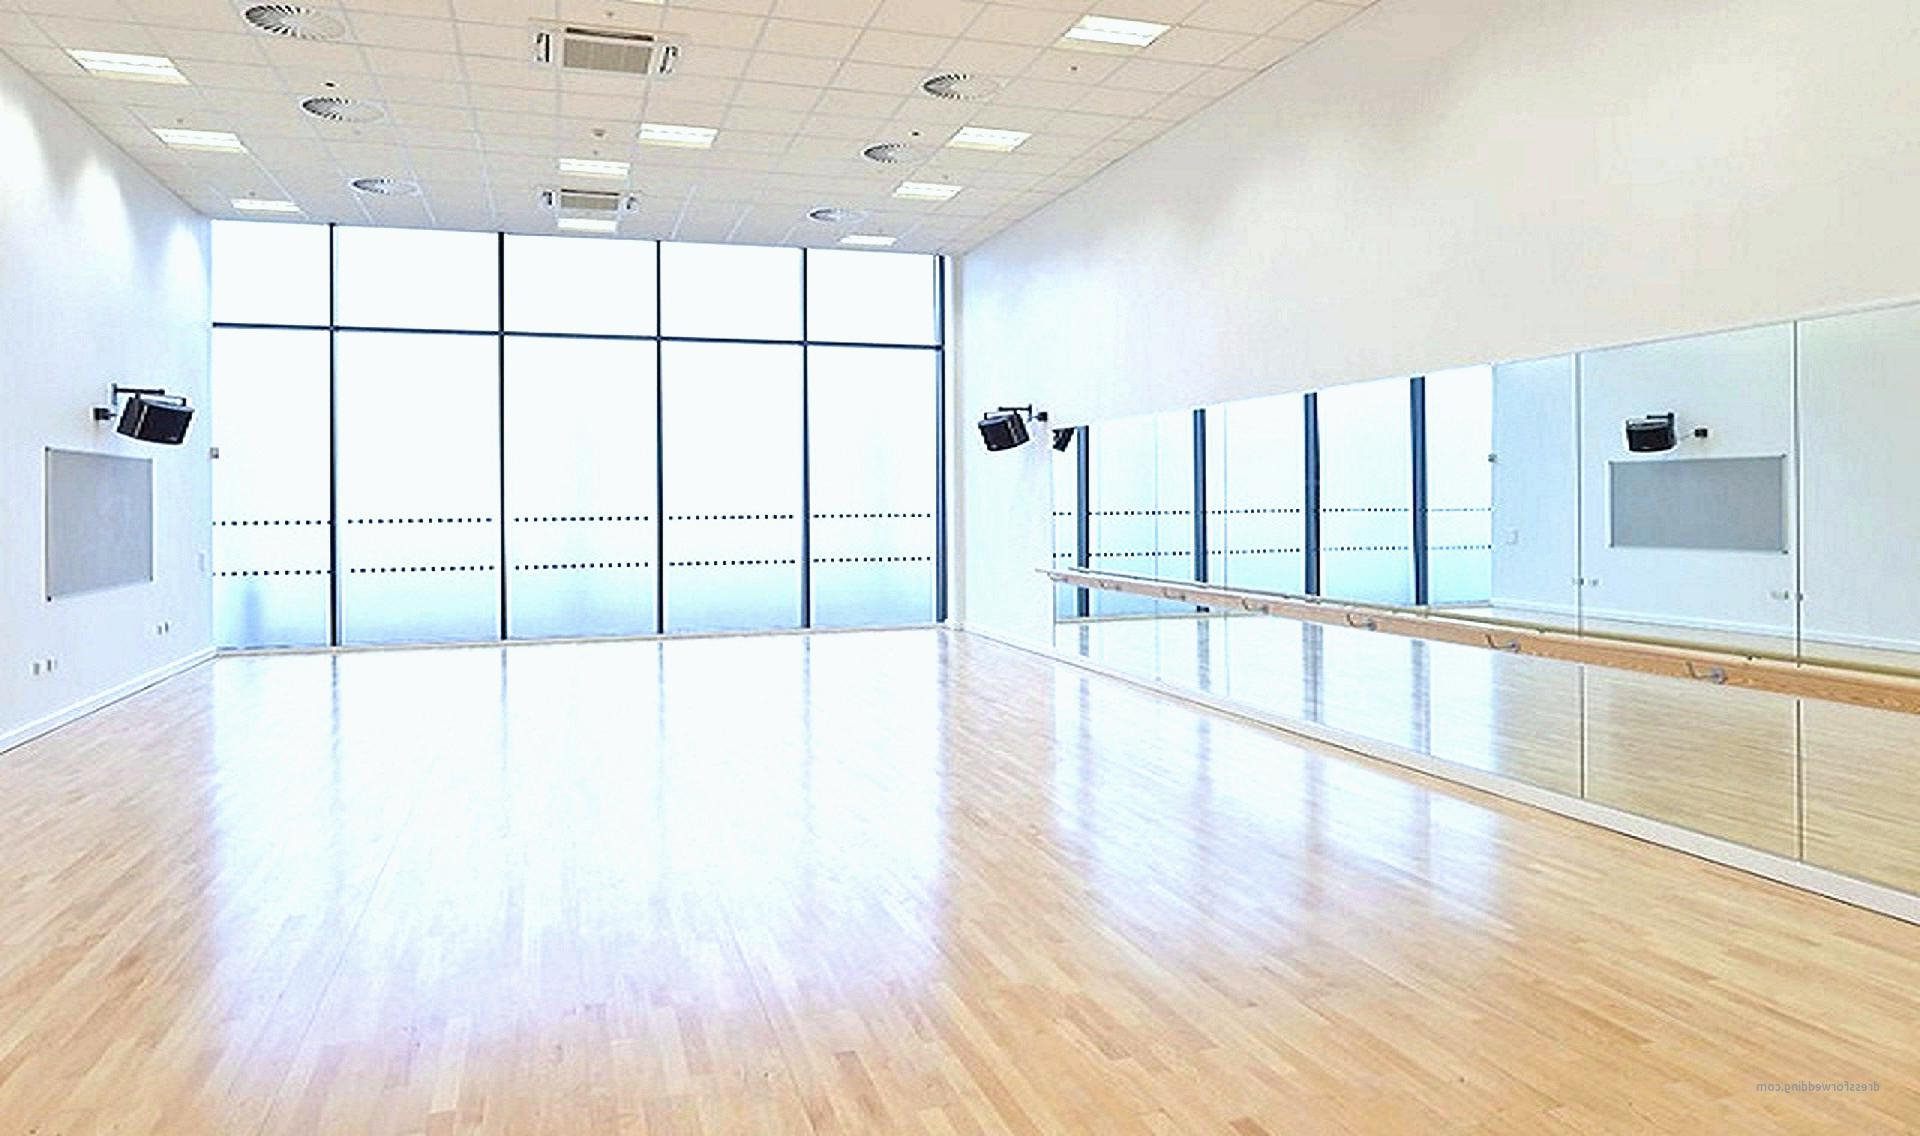 Gym Wall Mirrors With Regard To Most Popular Gym Mirrors & Dance Studio Mirrors : Glass Ninja (View 4 of 20)